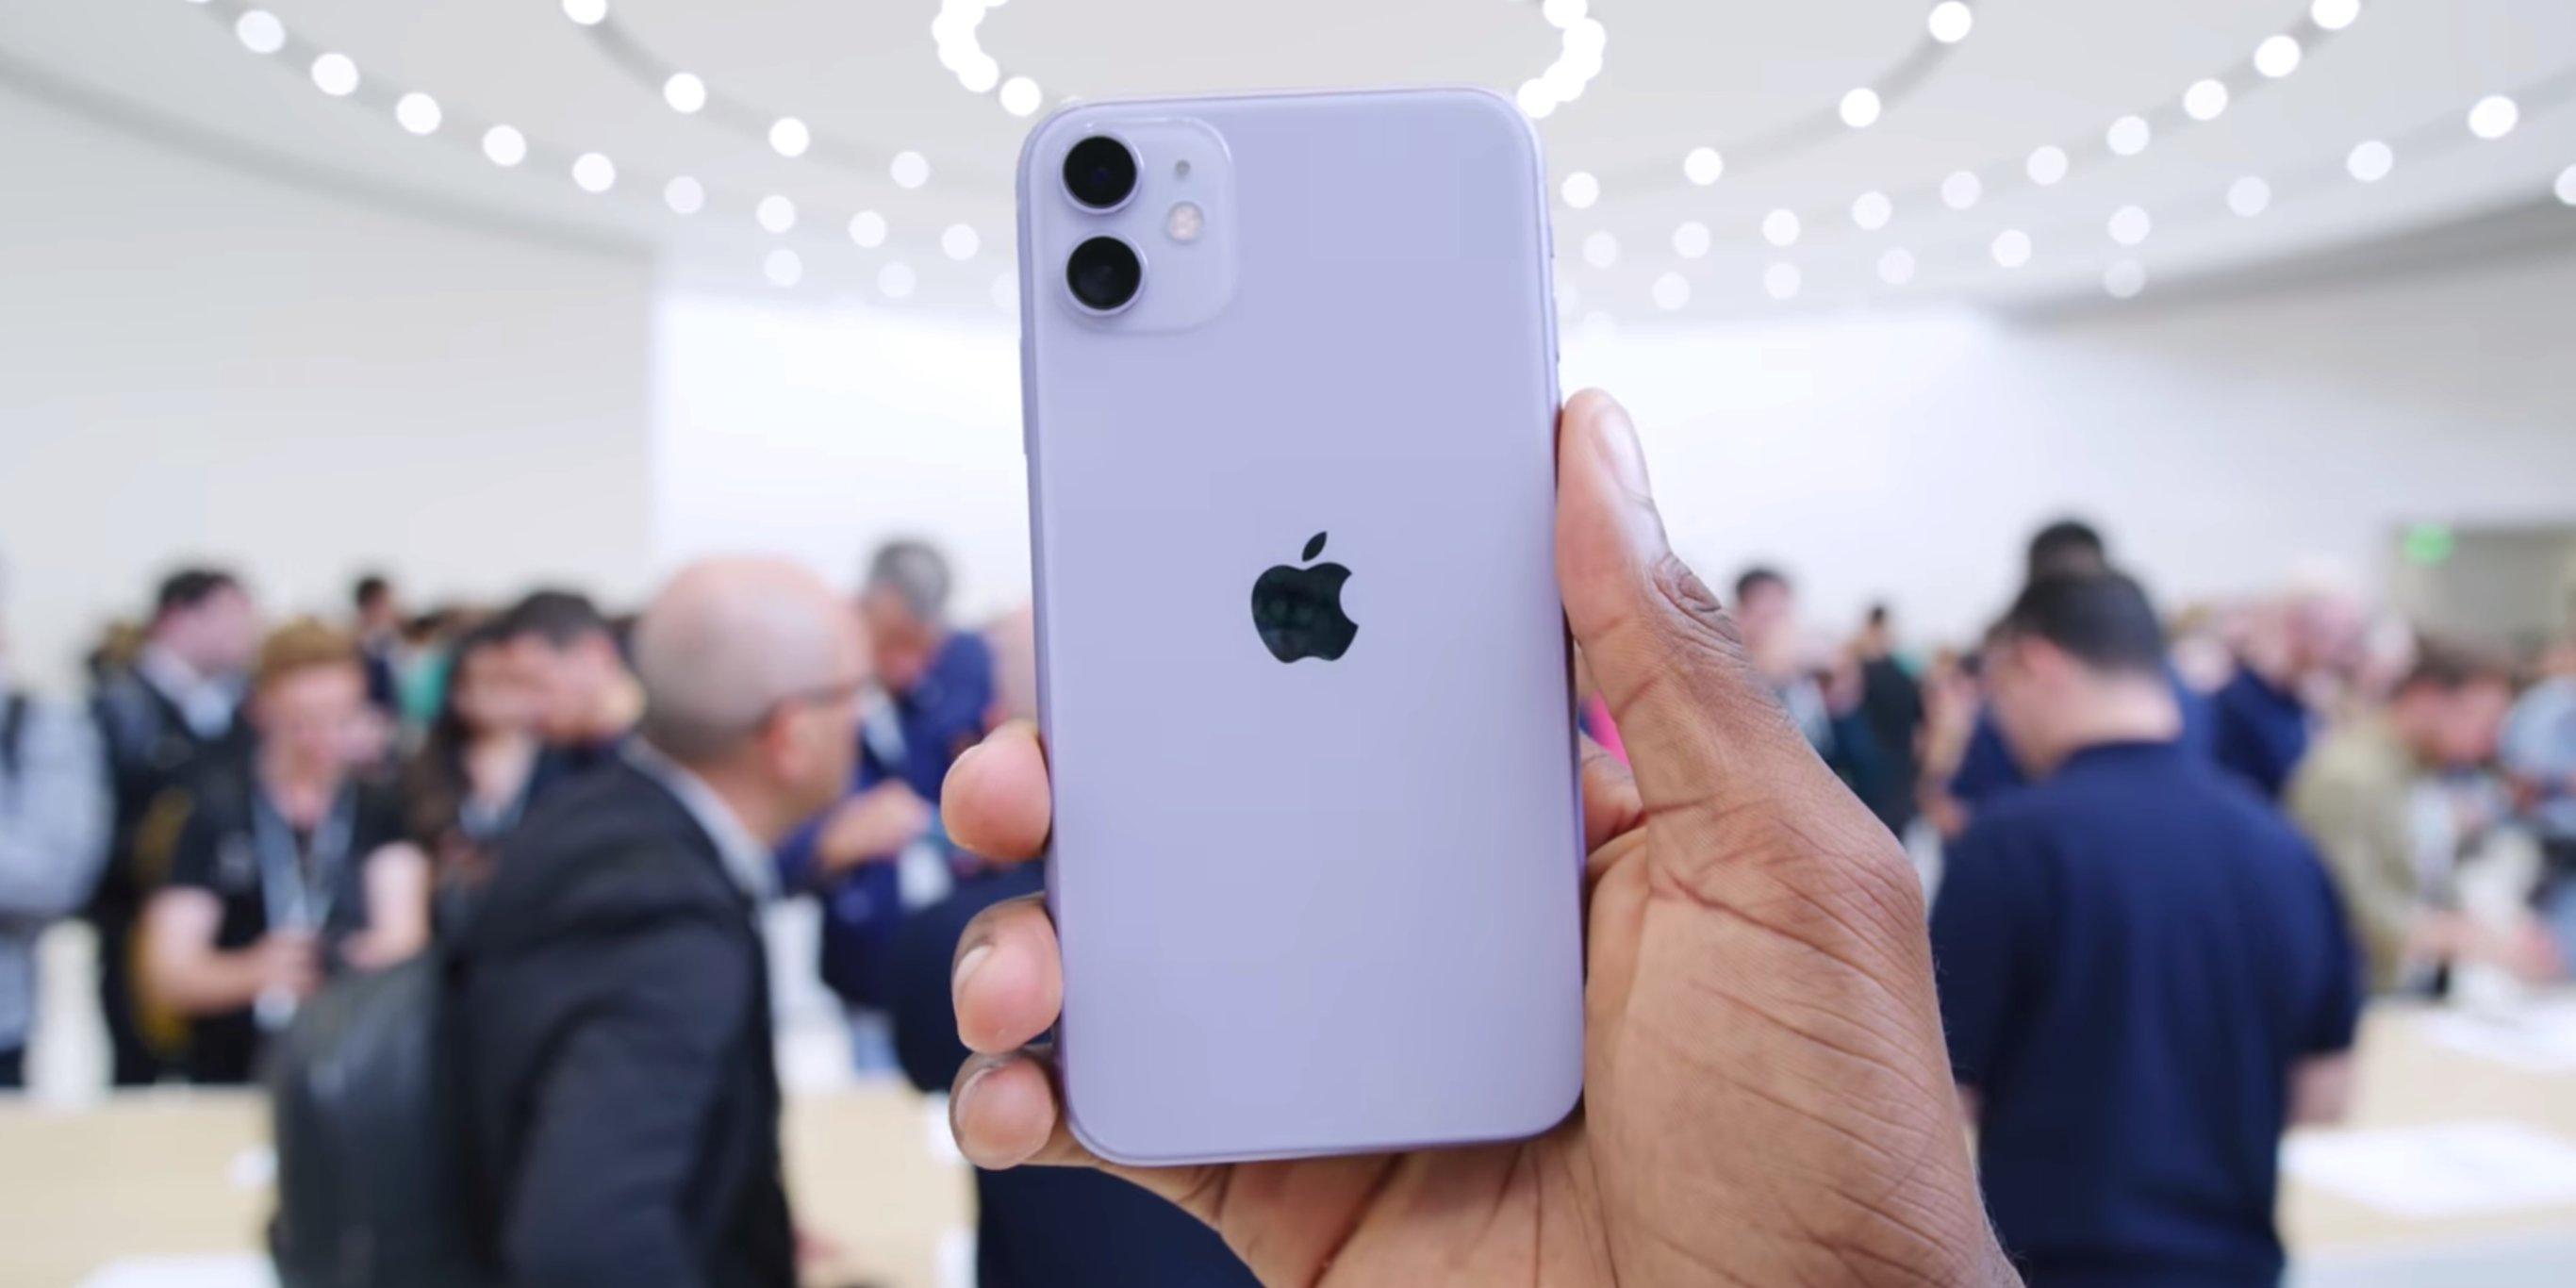 9 reasons you should buy the standard iPhone 11 instead of an iPhone 11 Pro or 11 Pro Max (AAPL)